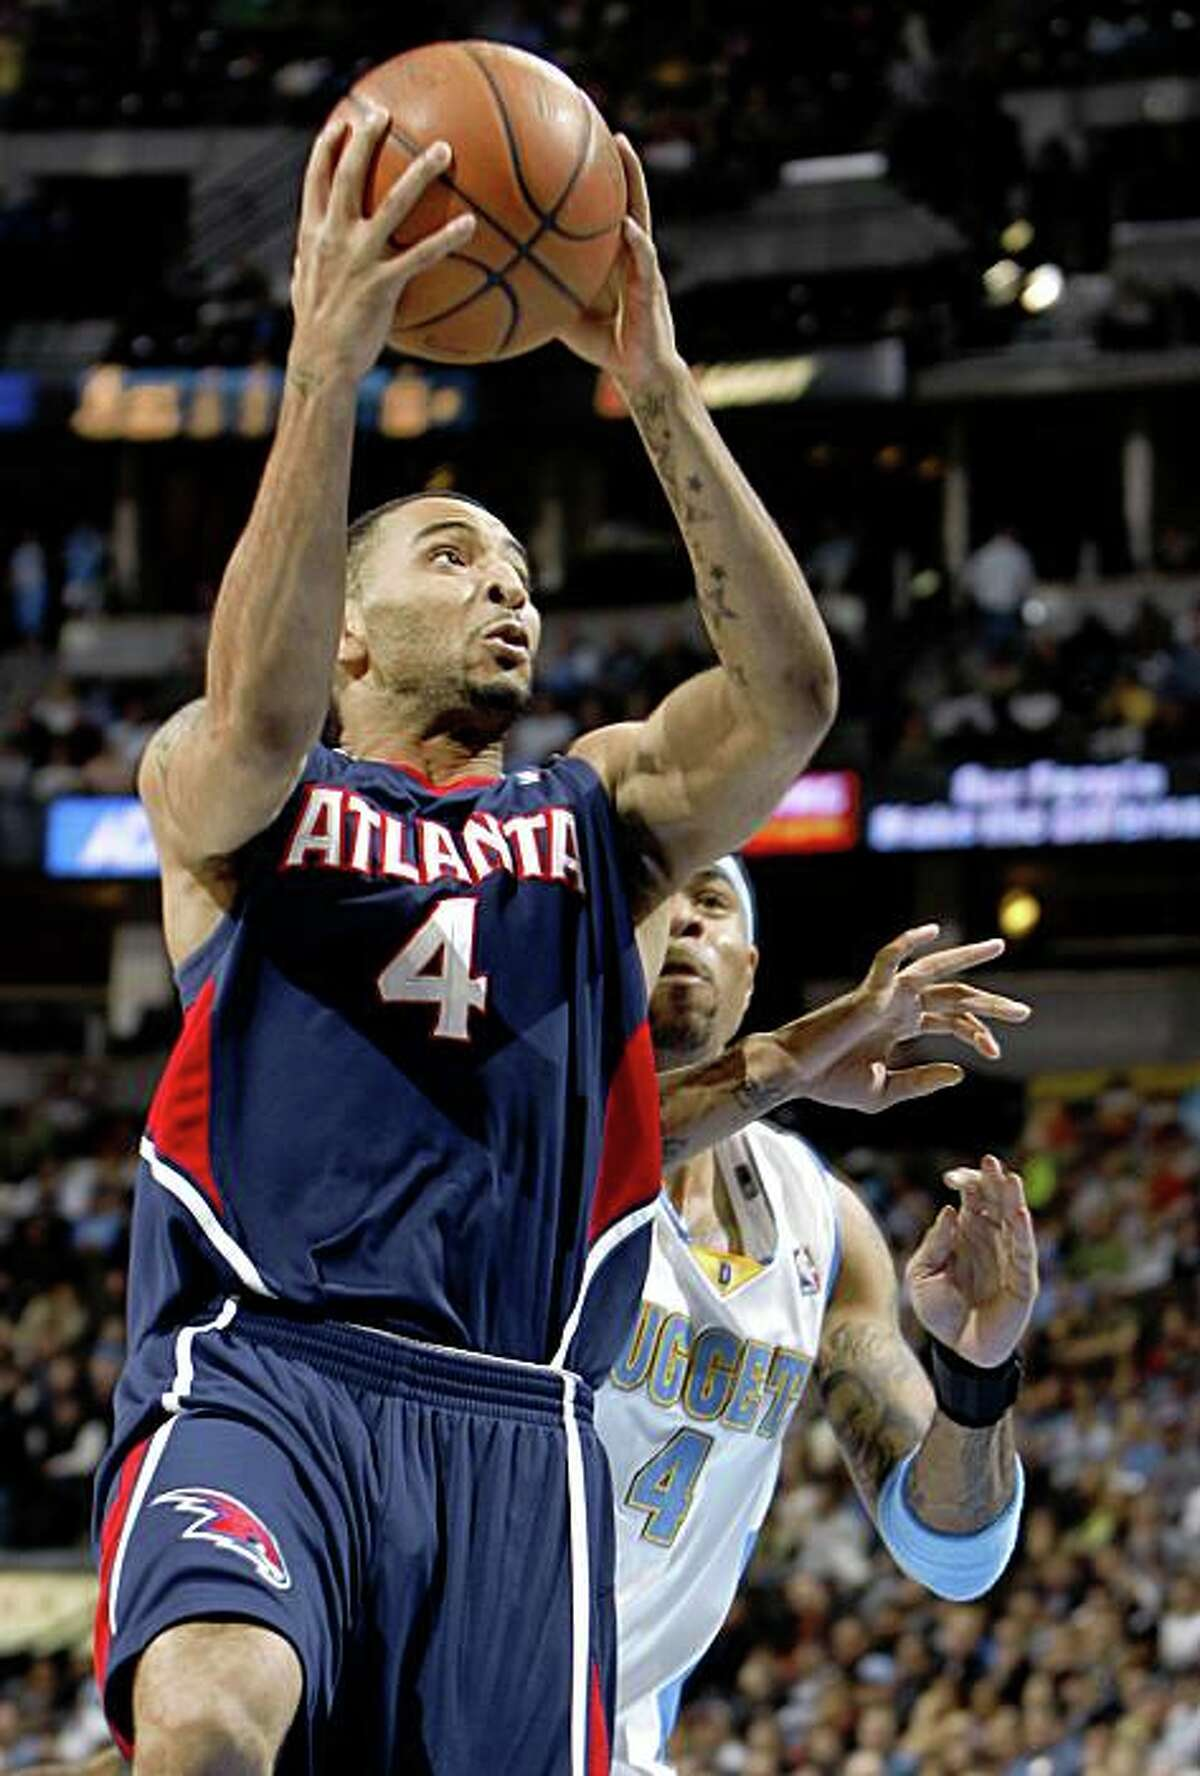 FILE - In this Feb. 25, 2009, file photo, Atlanta Hawks guard Acie Law, left, slips past Denver Nuggets forward Kenyon Martin for a basket during the first quarter of an NBA basketball game in Denver. A person with knowledge of the negotiations says the Hawks and Golden State Warriors are working on a trade that would send point guard Jamal Crawford to Atlanta for guards Acie Law and Speedy Claxton. Crawford can't be traded until July 1 or until he signs paperwork indicating he won't opt out of his contract and become a free agent. (AP Photo/David Zalubowski, File)